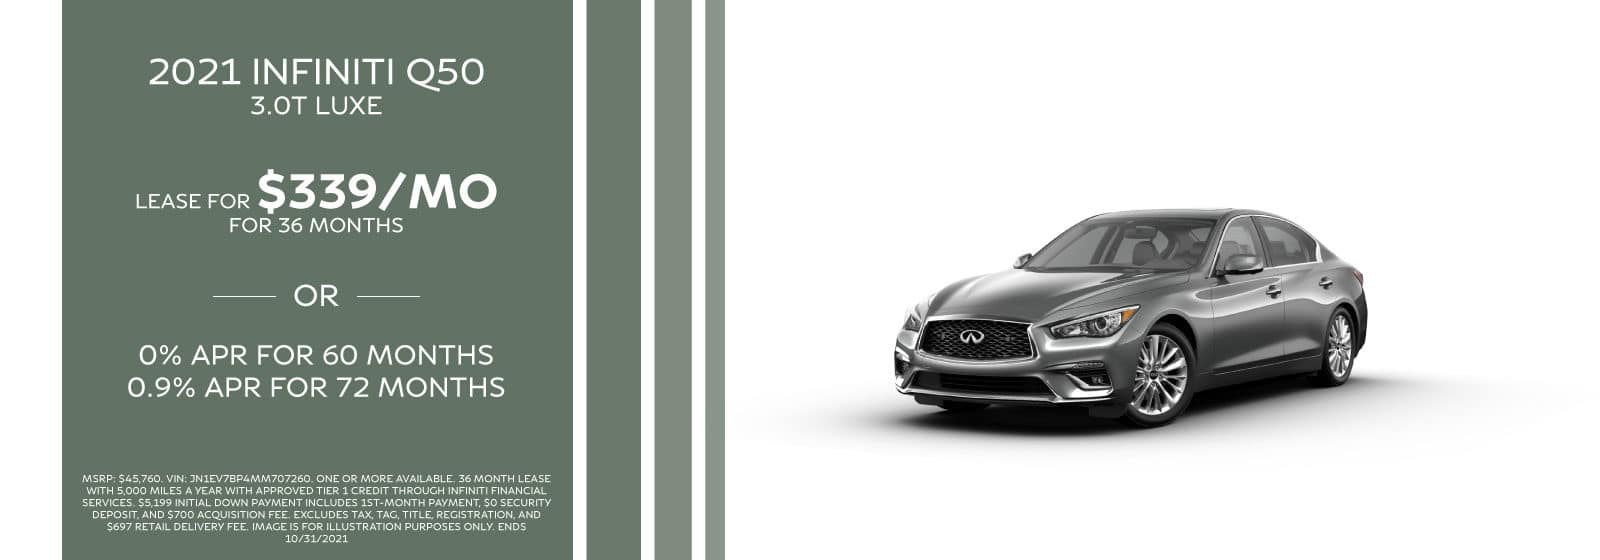 2021 Q50. Lease for $339/month for 36 months. MSRP: $45,760. VIN: JN1EV7BP4MM707260. One or more available. 36 Month lease with 5,000 miles a year with approved Tier 1 credit through INFINITI Financial Services. $5,199 initial down payment includes 1st-month payment, $0 security deposit, and $700 acquisition fee. Excludes tax, tag, title, registration, and $697 Retail Delivery Fee. image is for illustration purposes only. Ends 10/31/2021